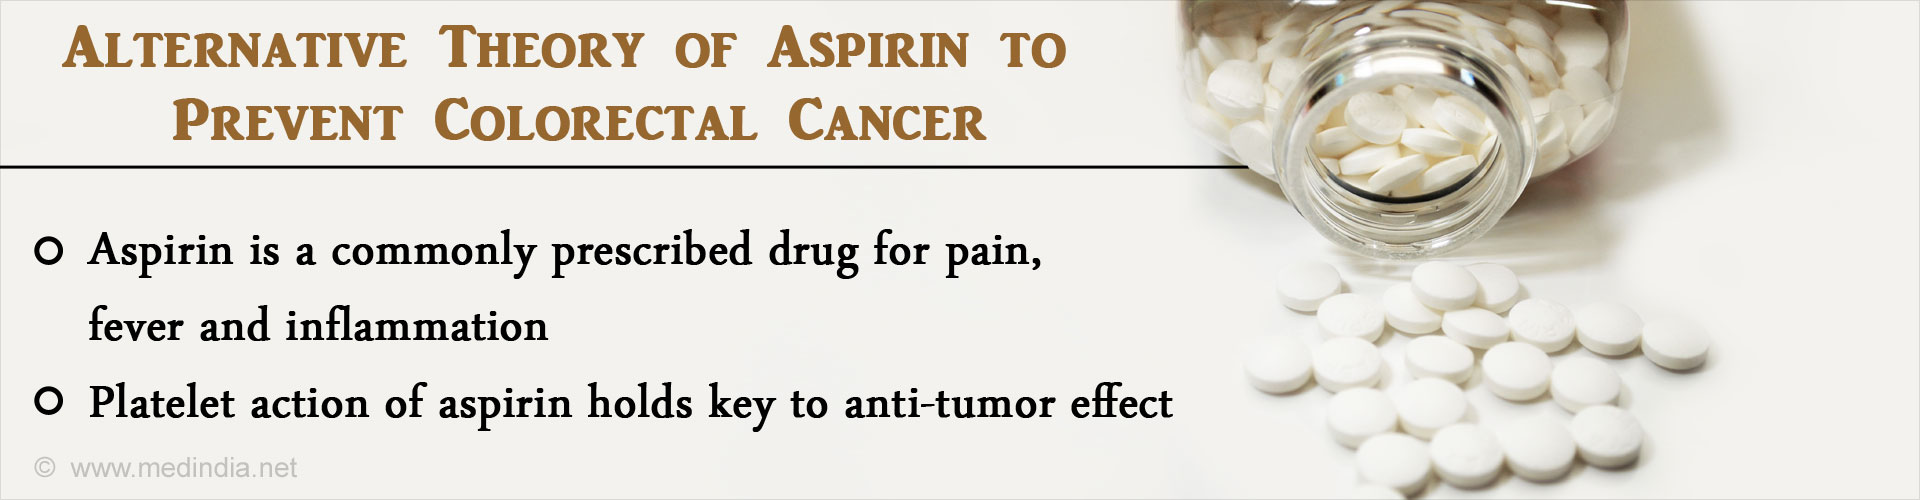 Platelet Action of Aspirin Can be a Key to Prevent Cancer